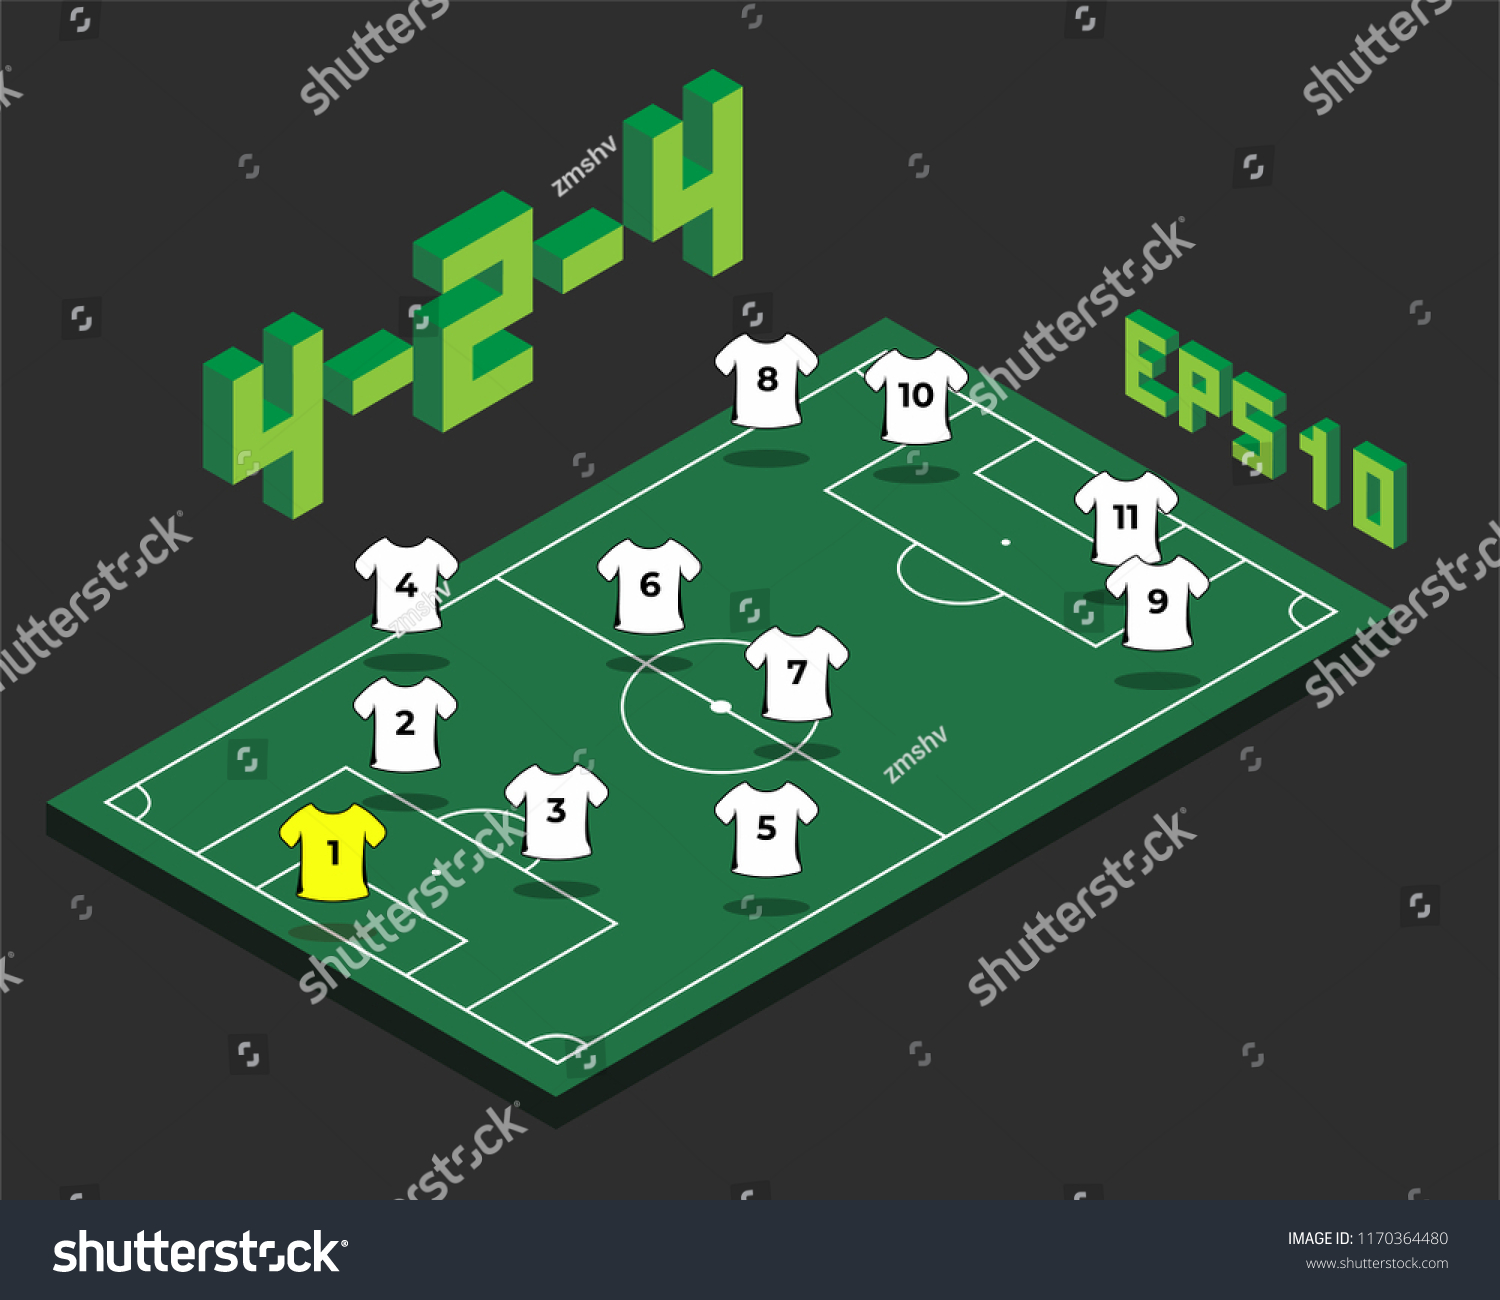 football 424 formation isometric field soccer stock vector royalty